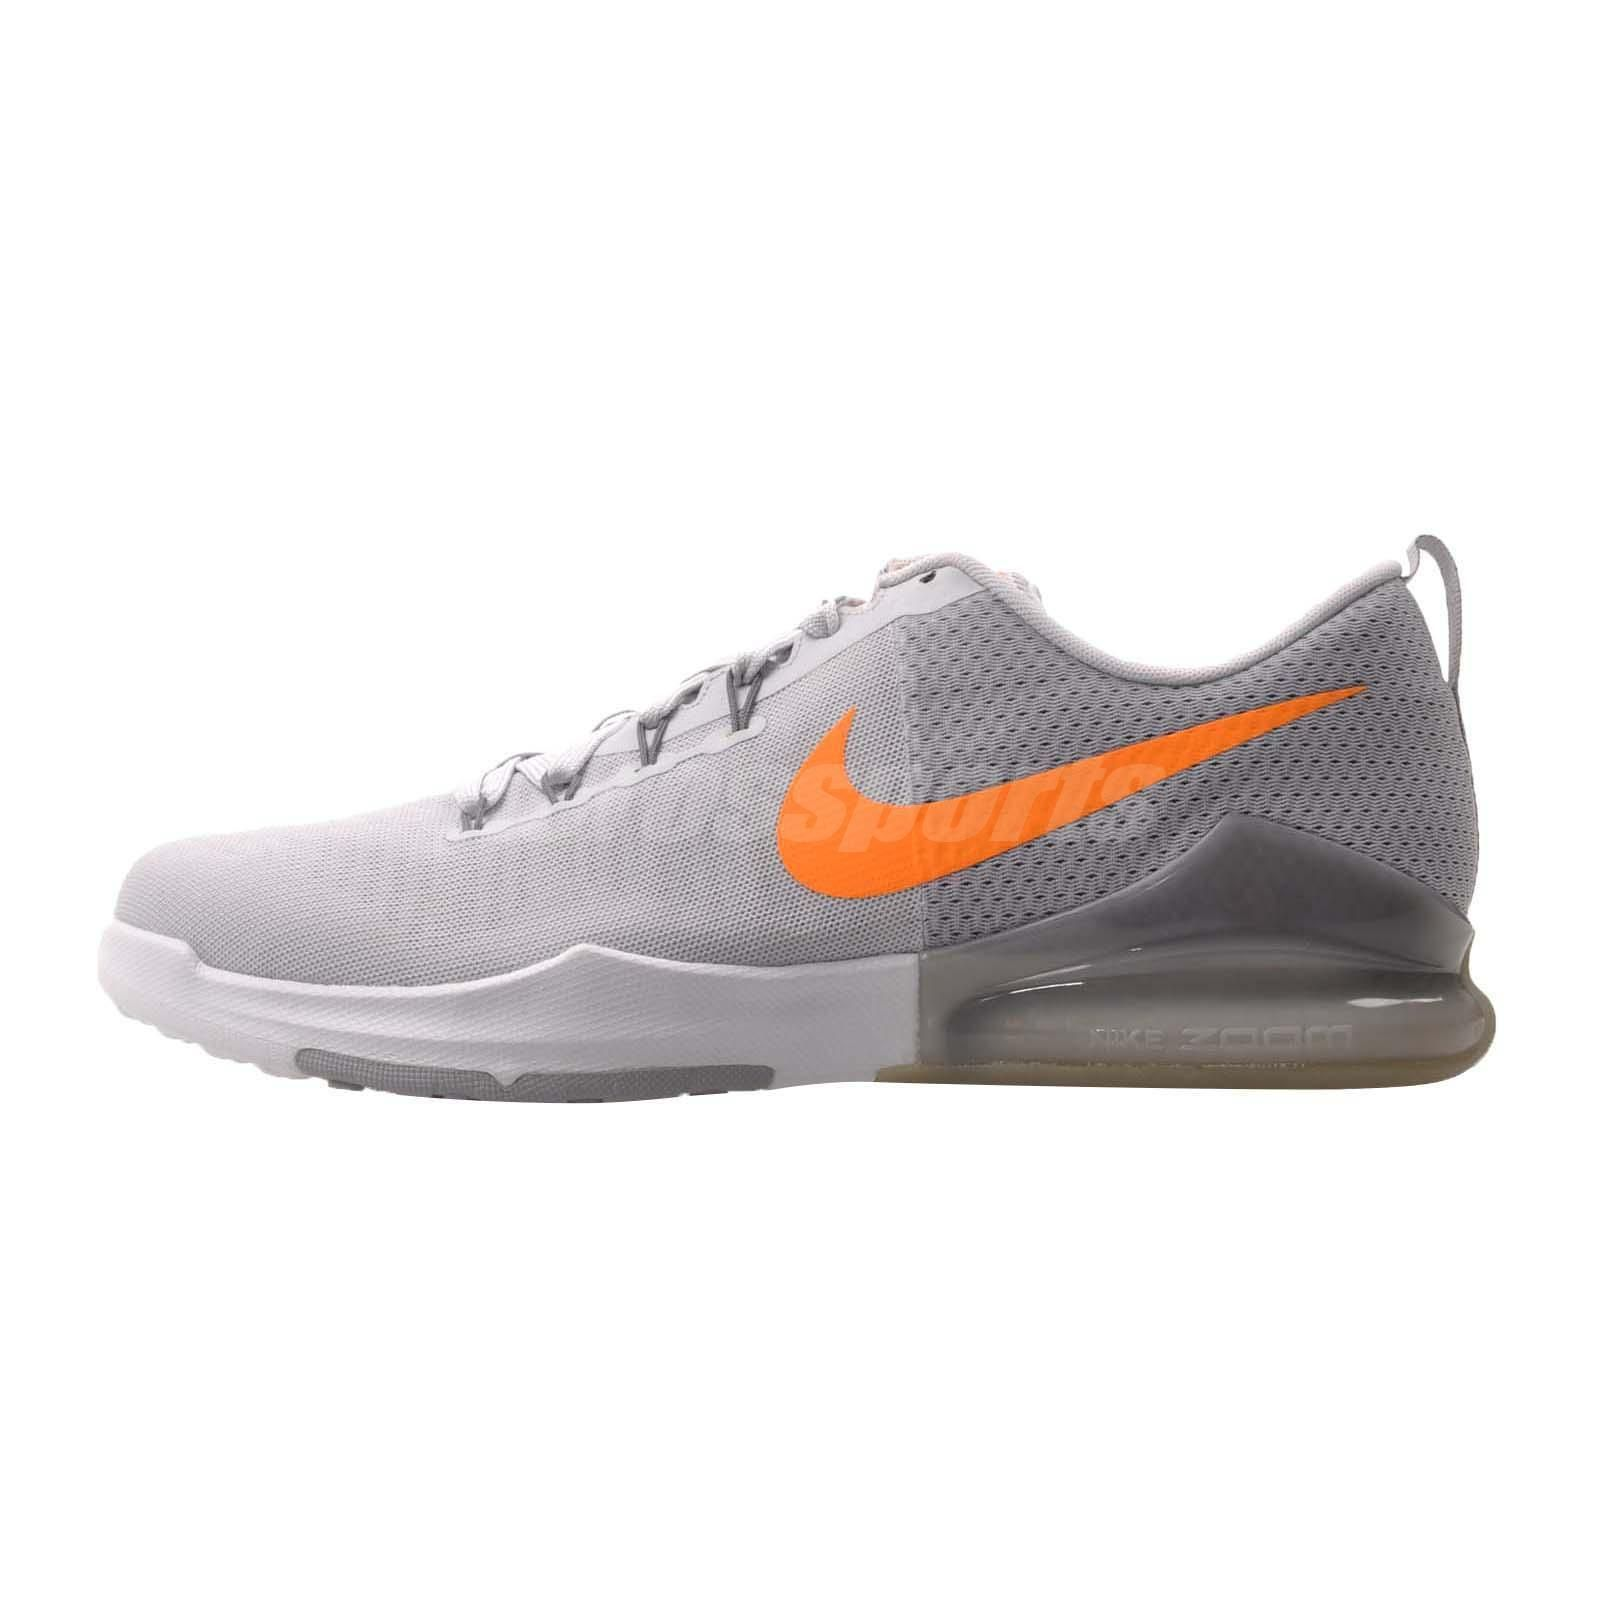 054f0ddc7 Nike Zoom Train Action Mens Cross Training Shoes Platinum Grey 852438-004